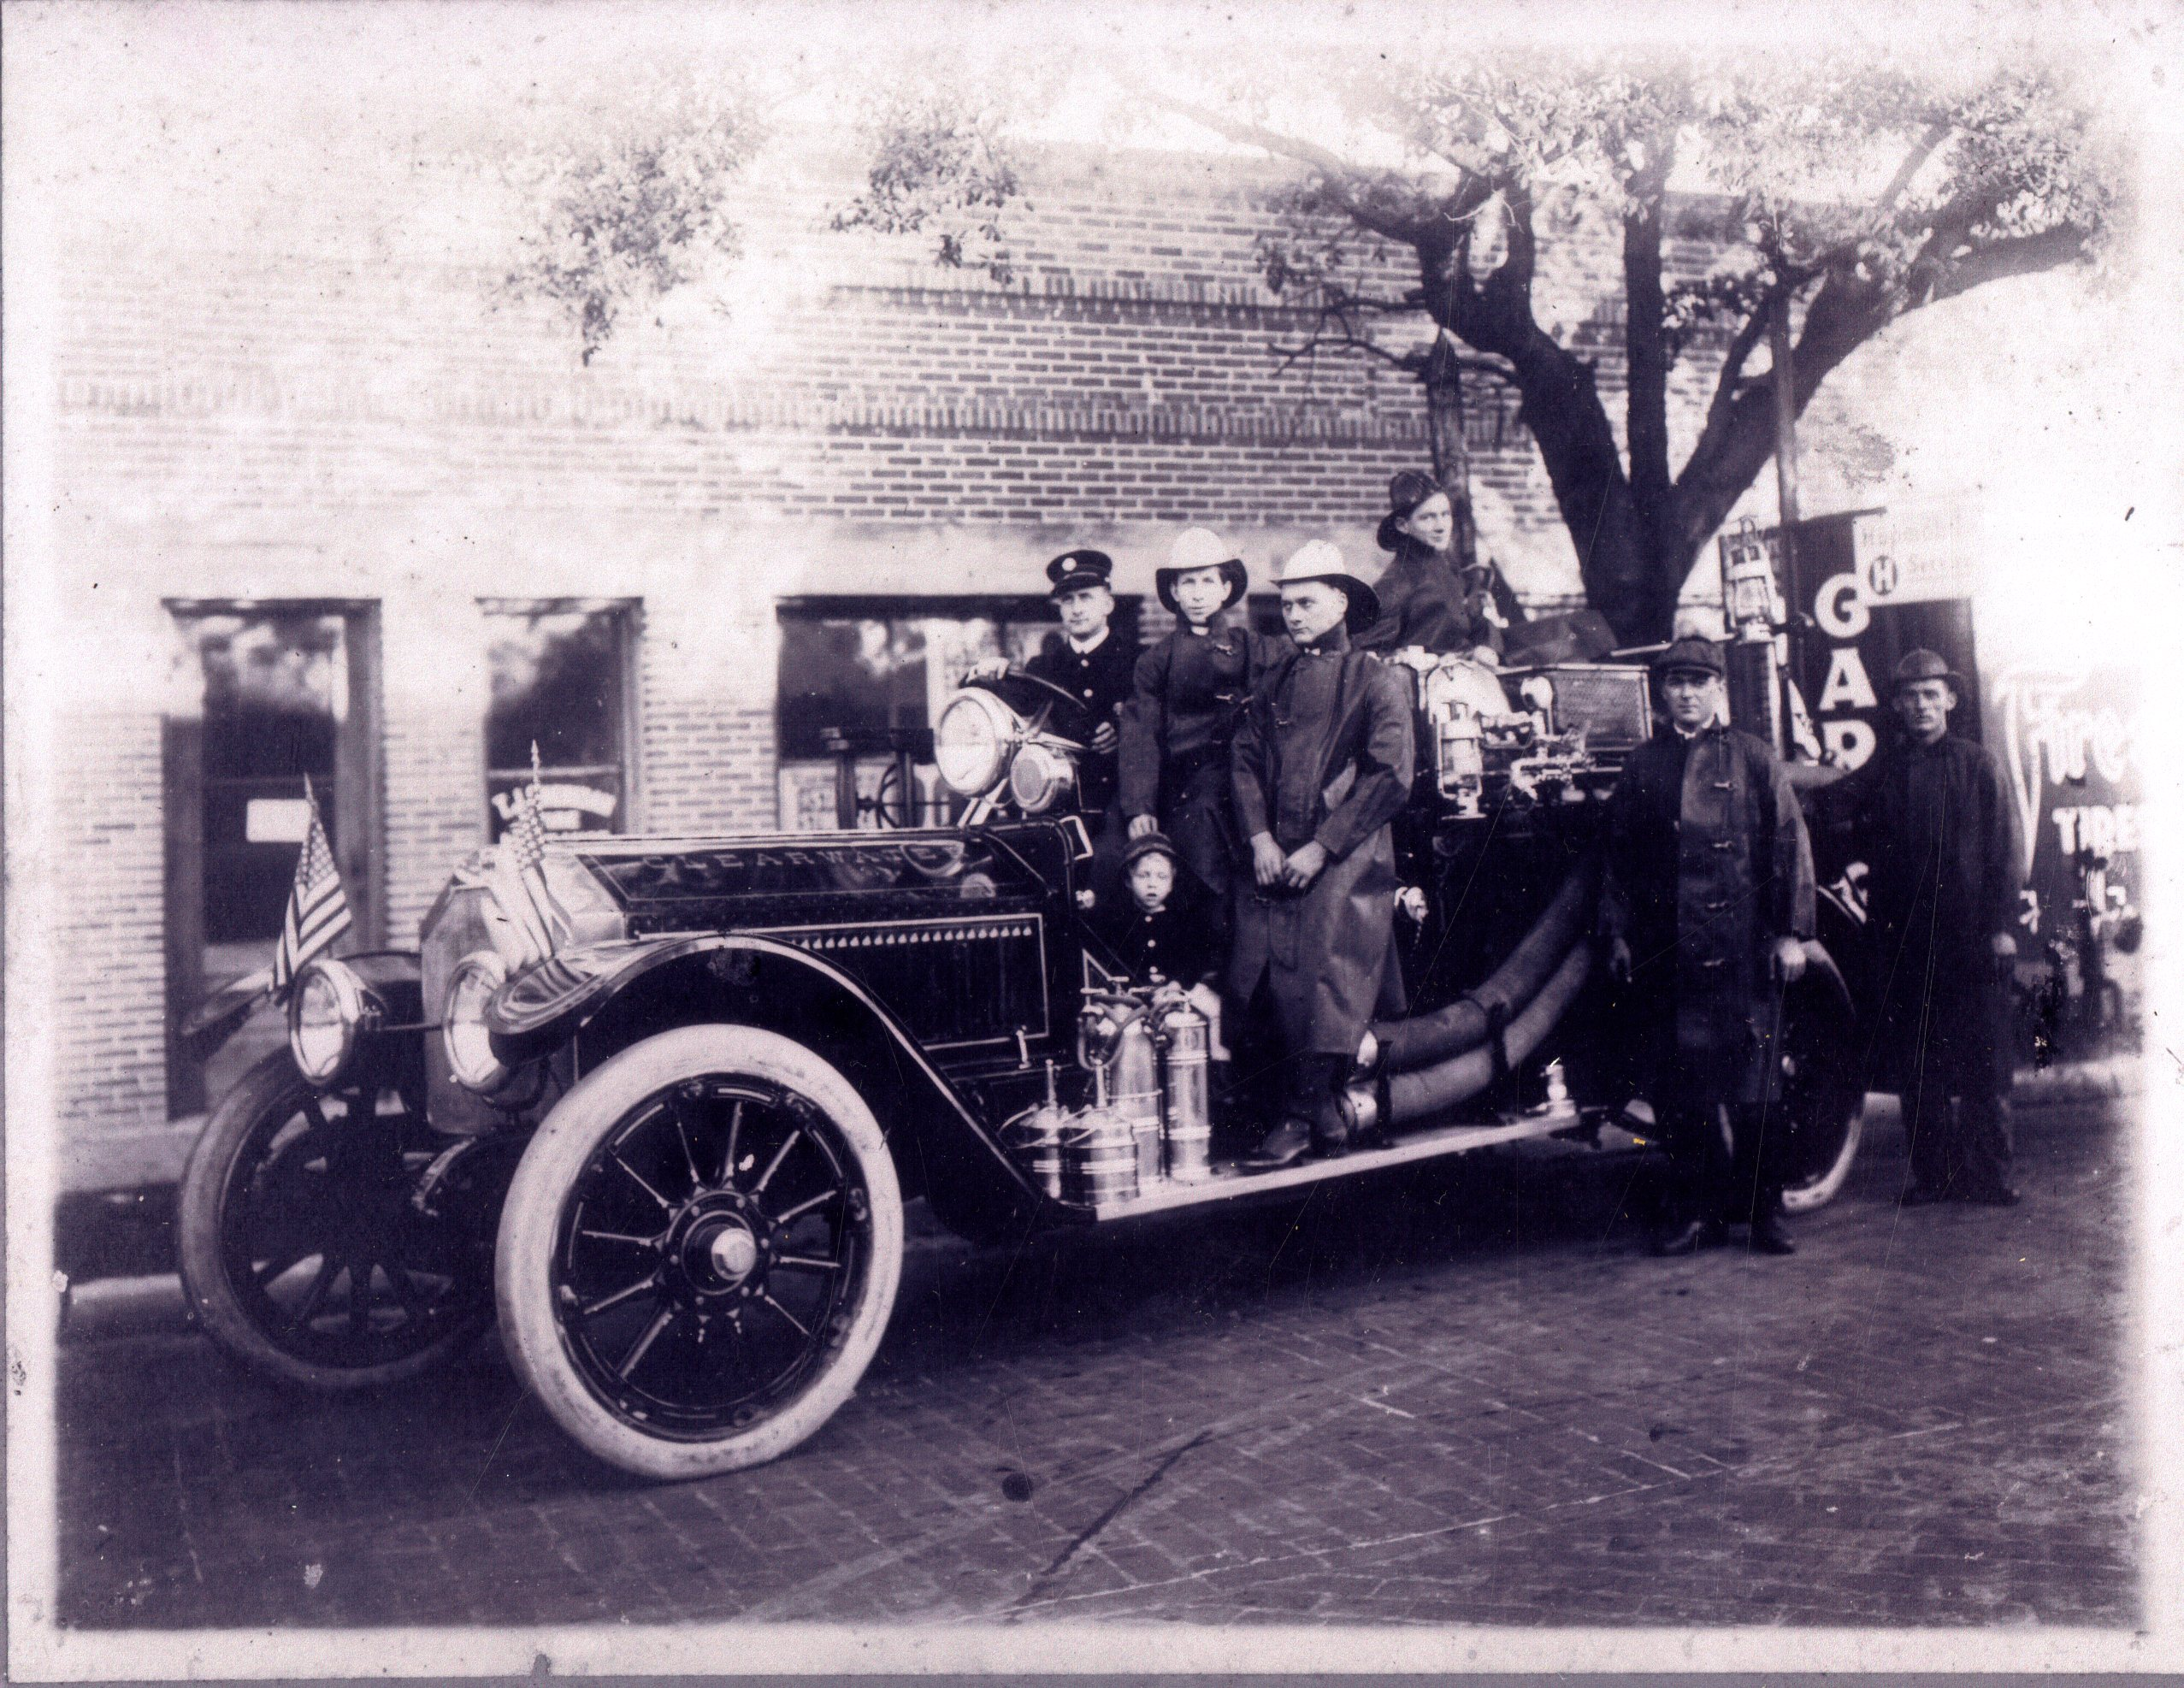 Firefighters with La France fire engine, Clearwater, Florida, circa 1915.